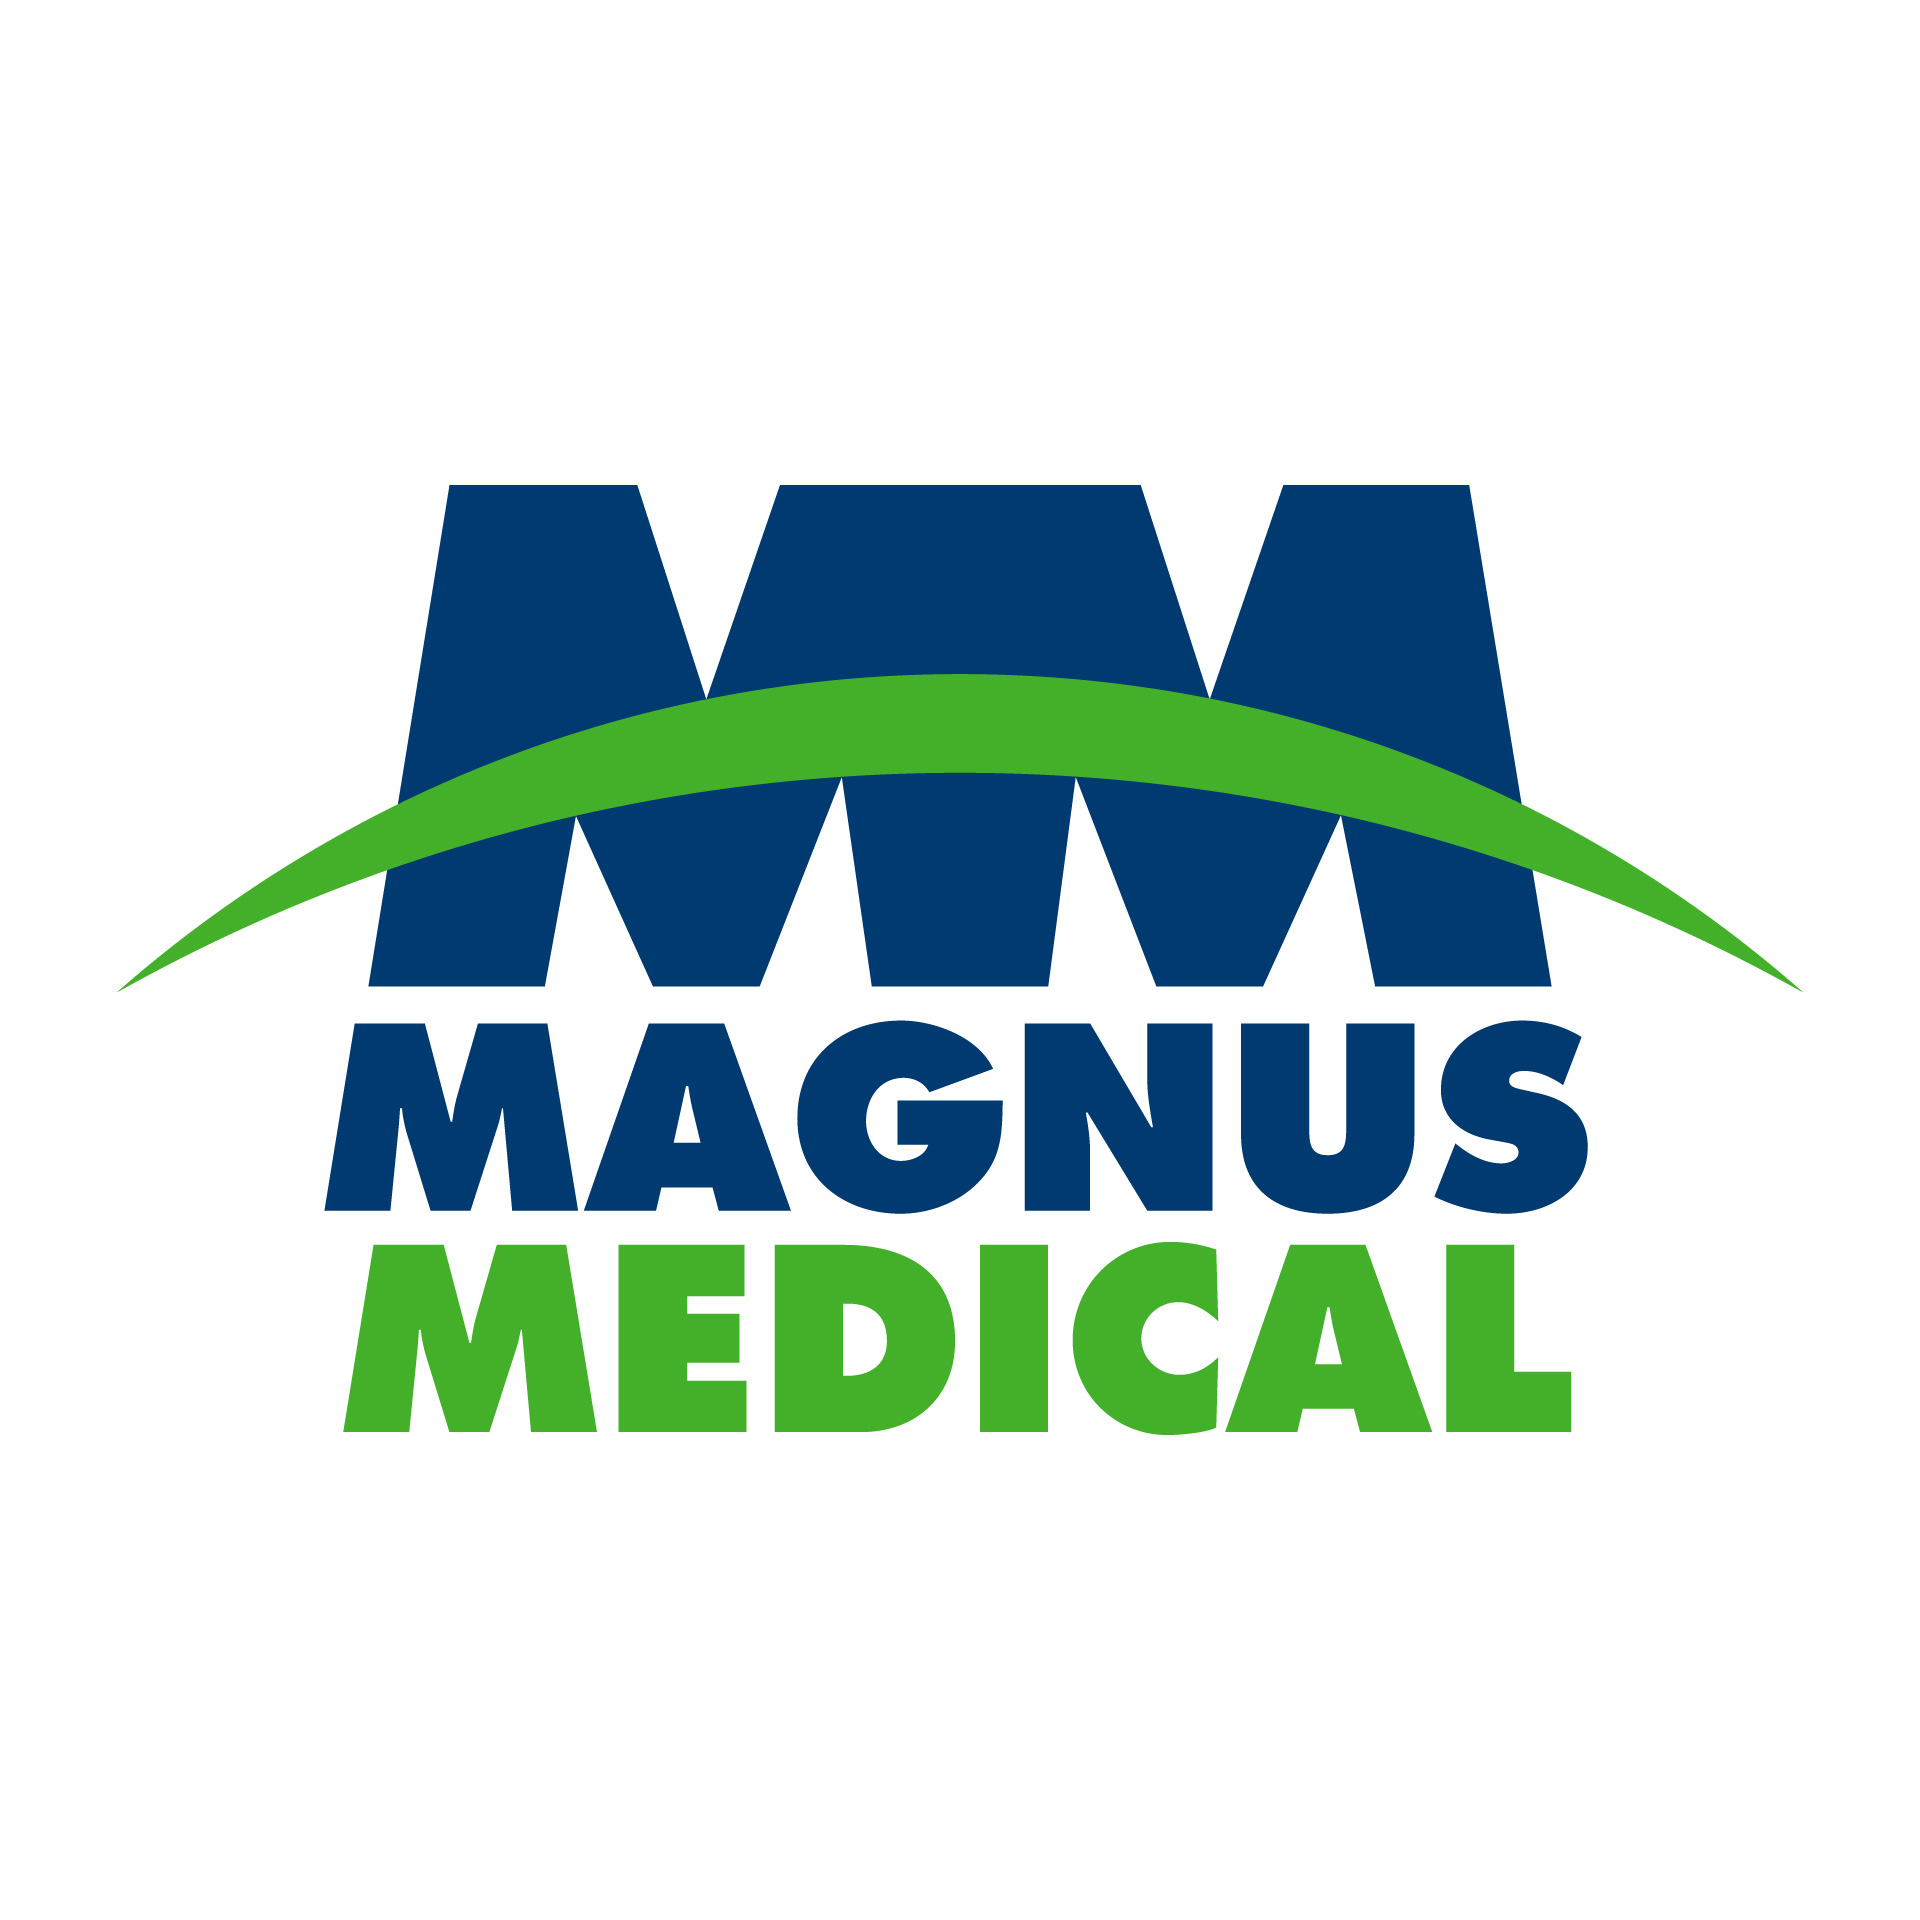 Diseño de Identidad Visual y Logotipo para la marca Magnus Medical